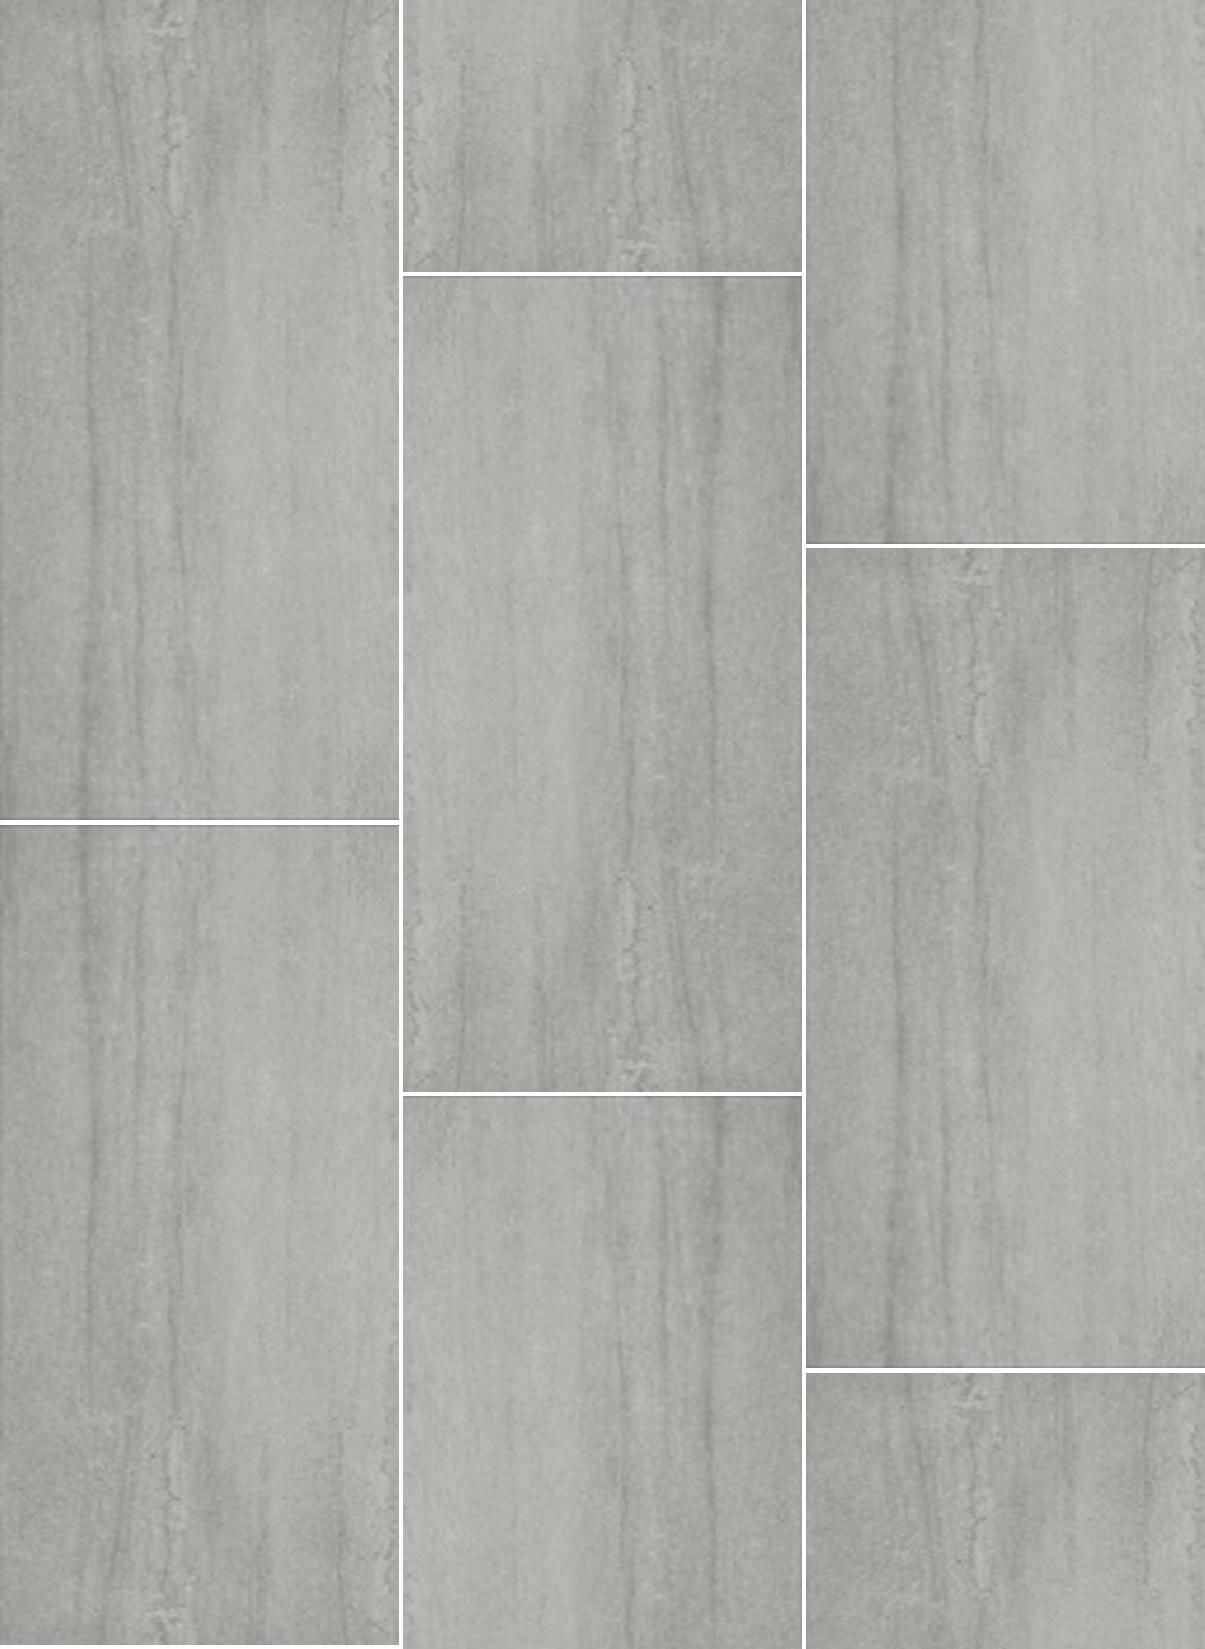 Merveilleux #LGLimitlessDesign #Contest Grey 12×24 Floor Tile | Nick Miller Design